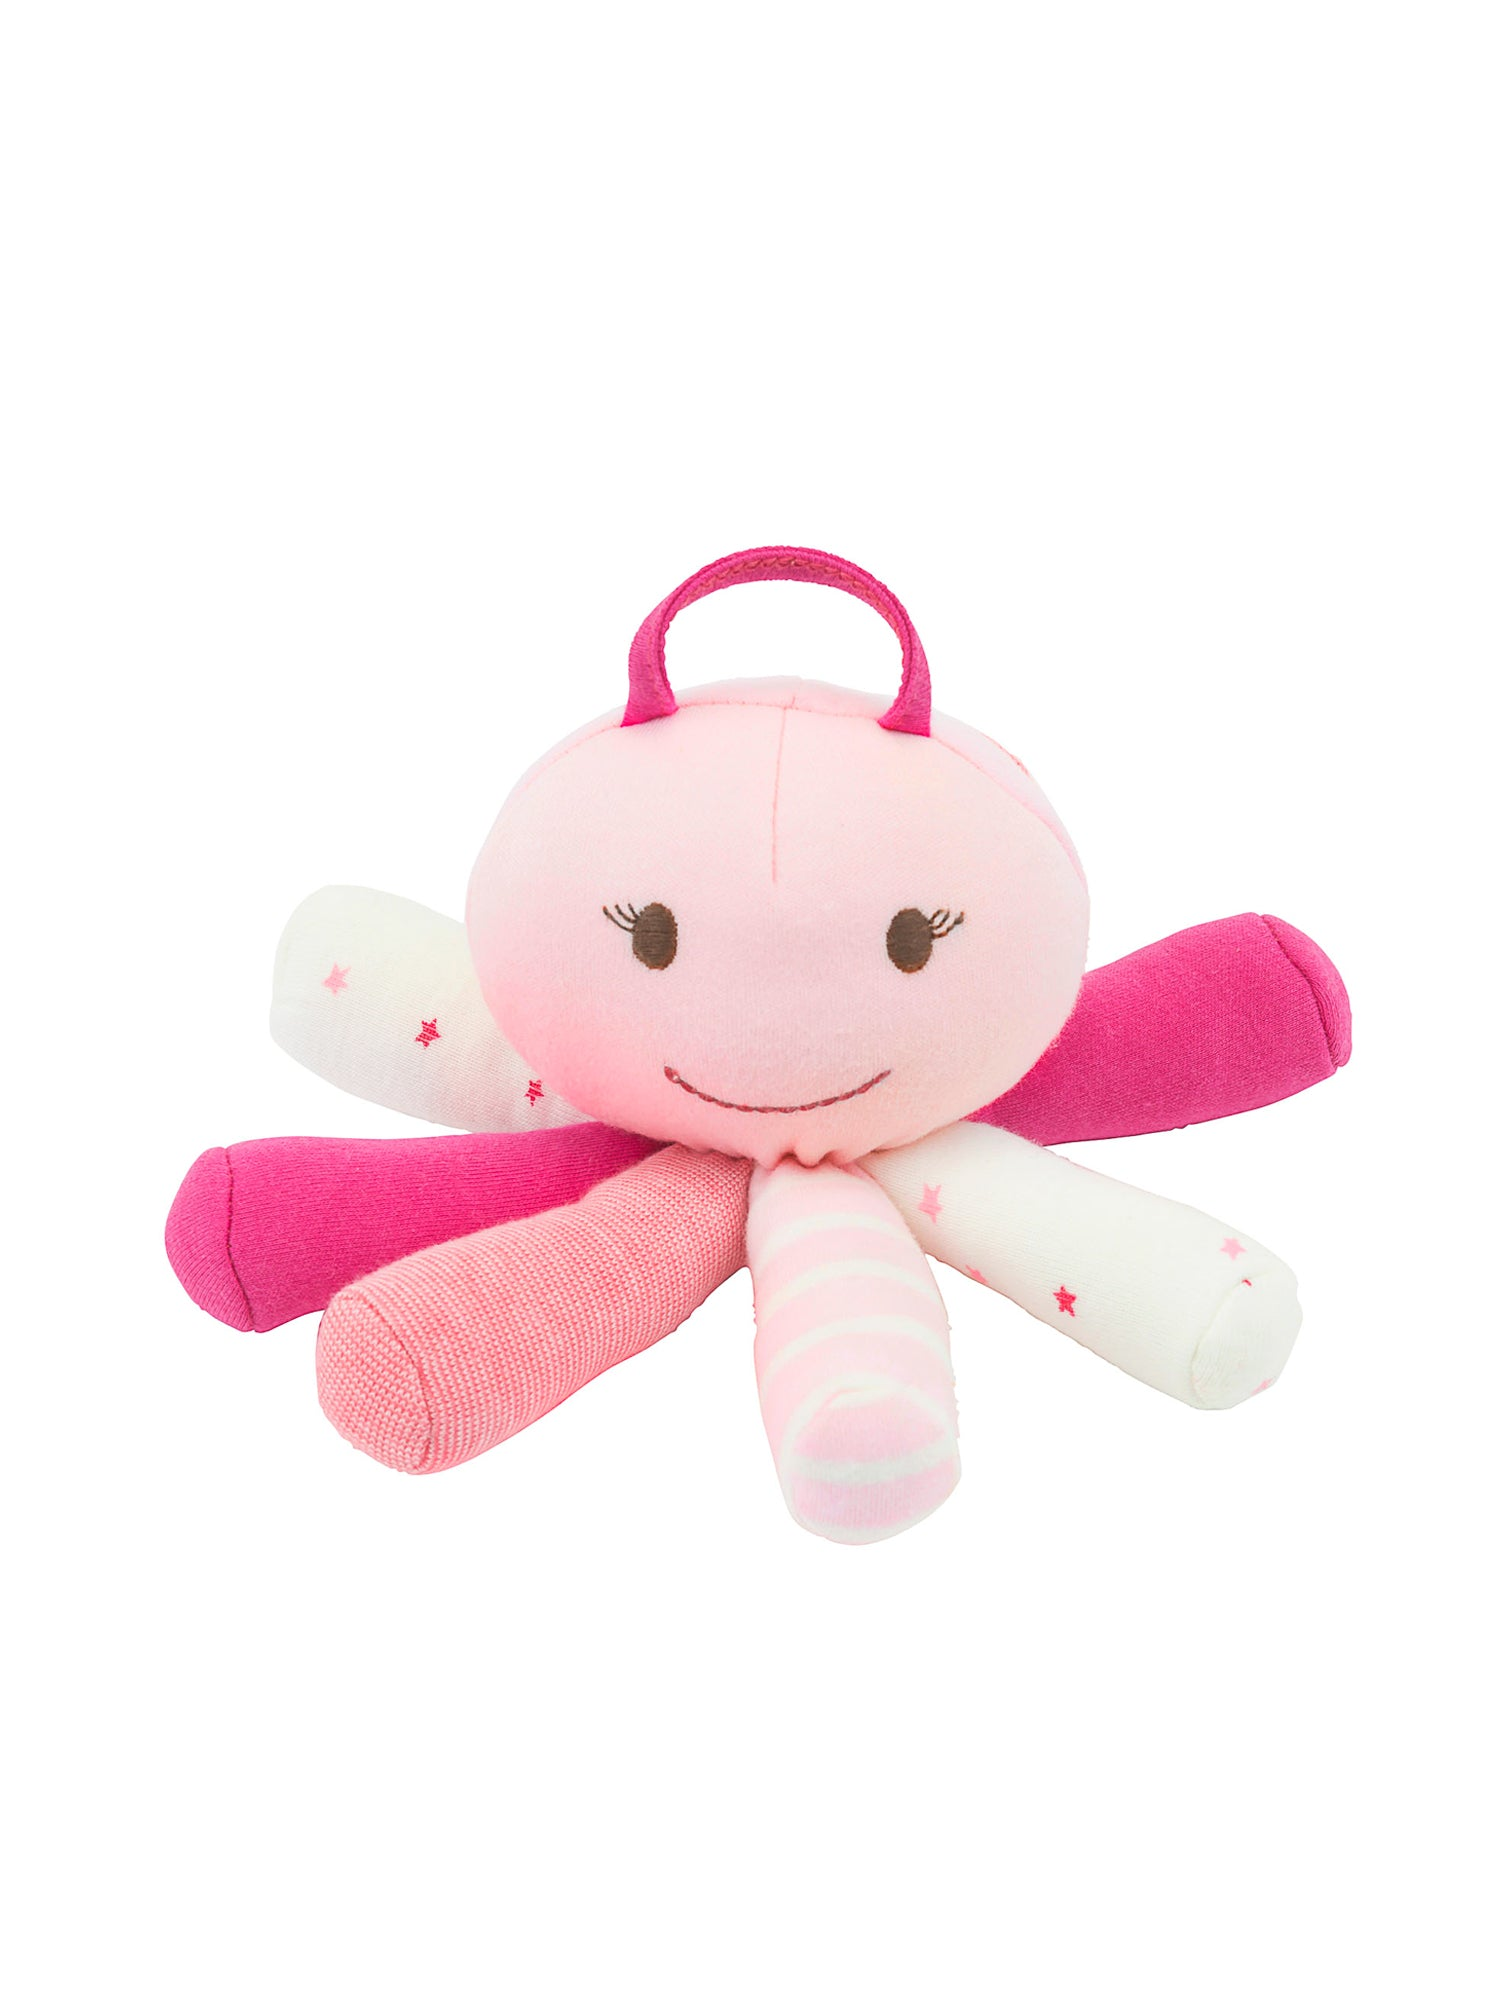 organic-baby-toy-sustainable-scrappy-scraptopus